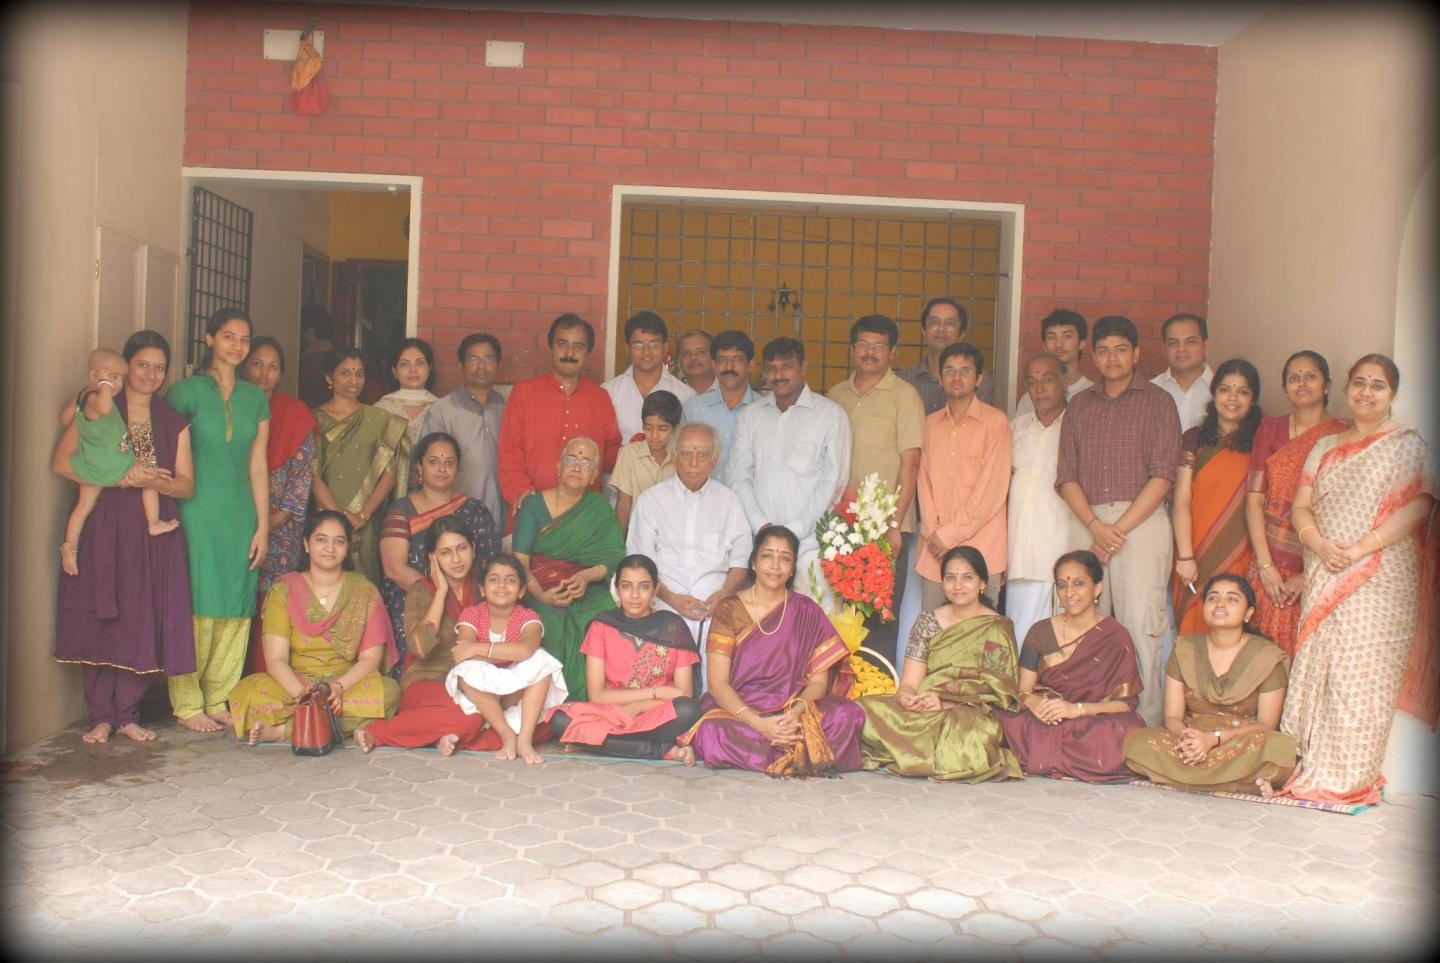 Lalgudi Shri Jayaraman with his wife, daughter (Lalgudi Smt. Vijayalakshmi), son (Lalgudi Shri G.J.R. Krishnan) and disciples